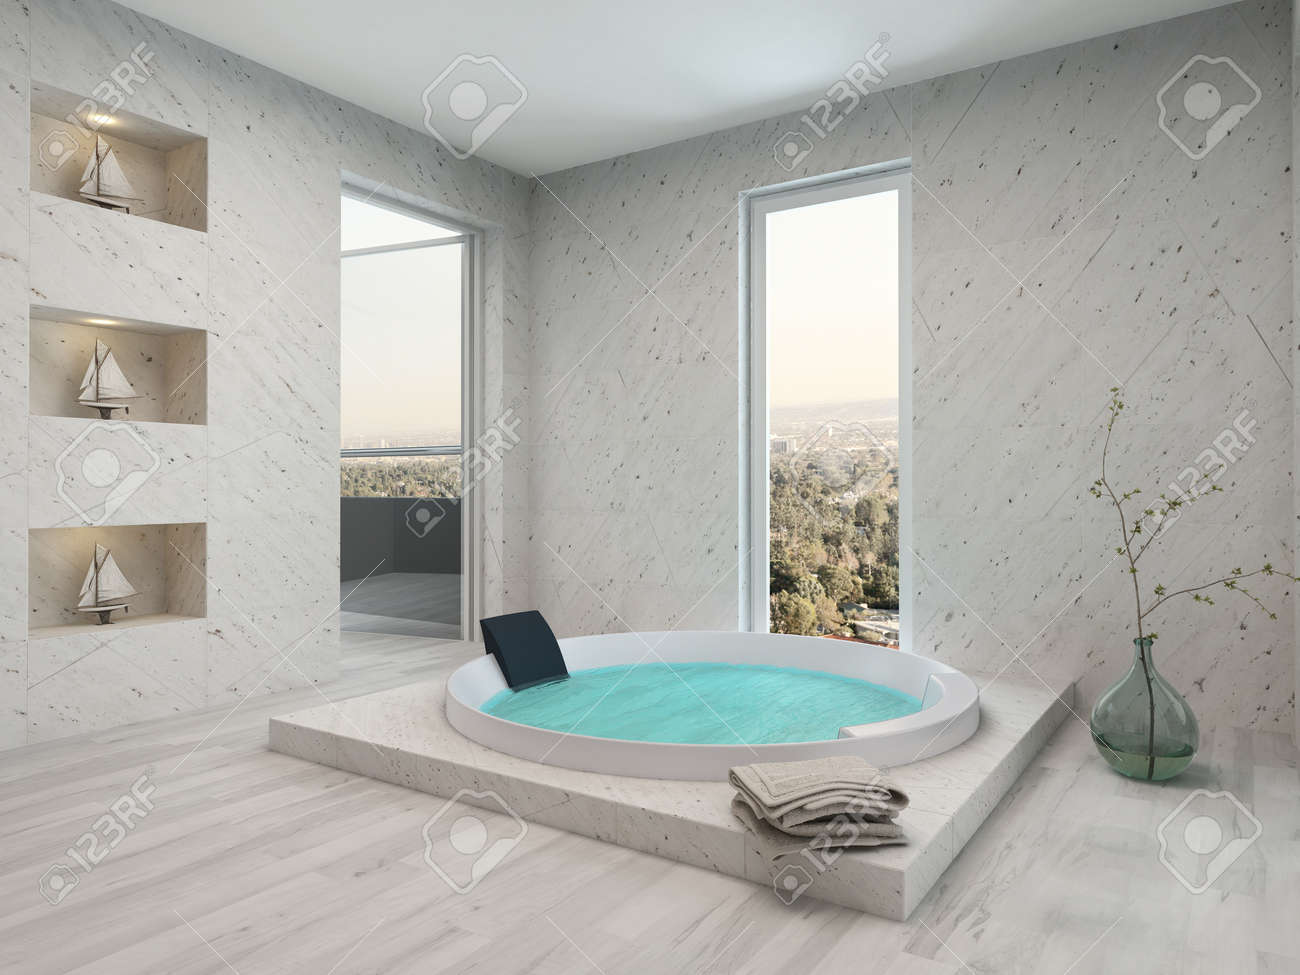 Jacuzzi In Bathroom jacuzzi images & stock pictures. royalty free jacuzzi photos and